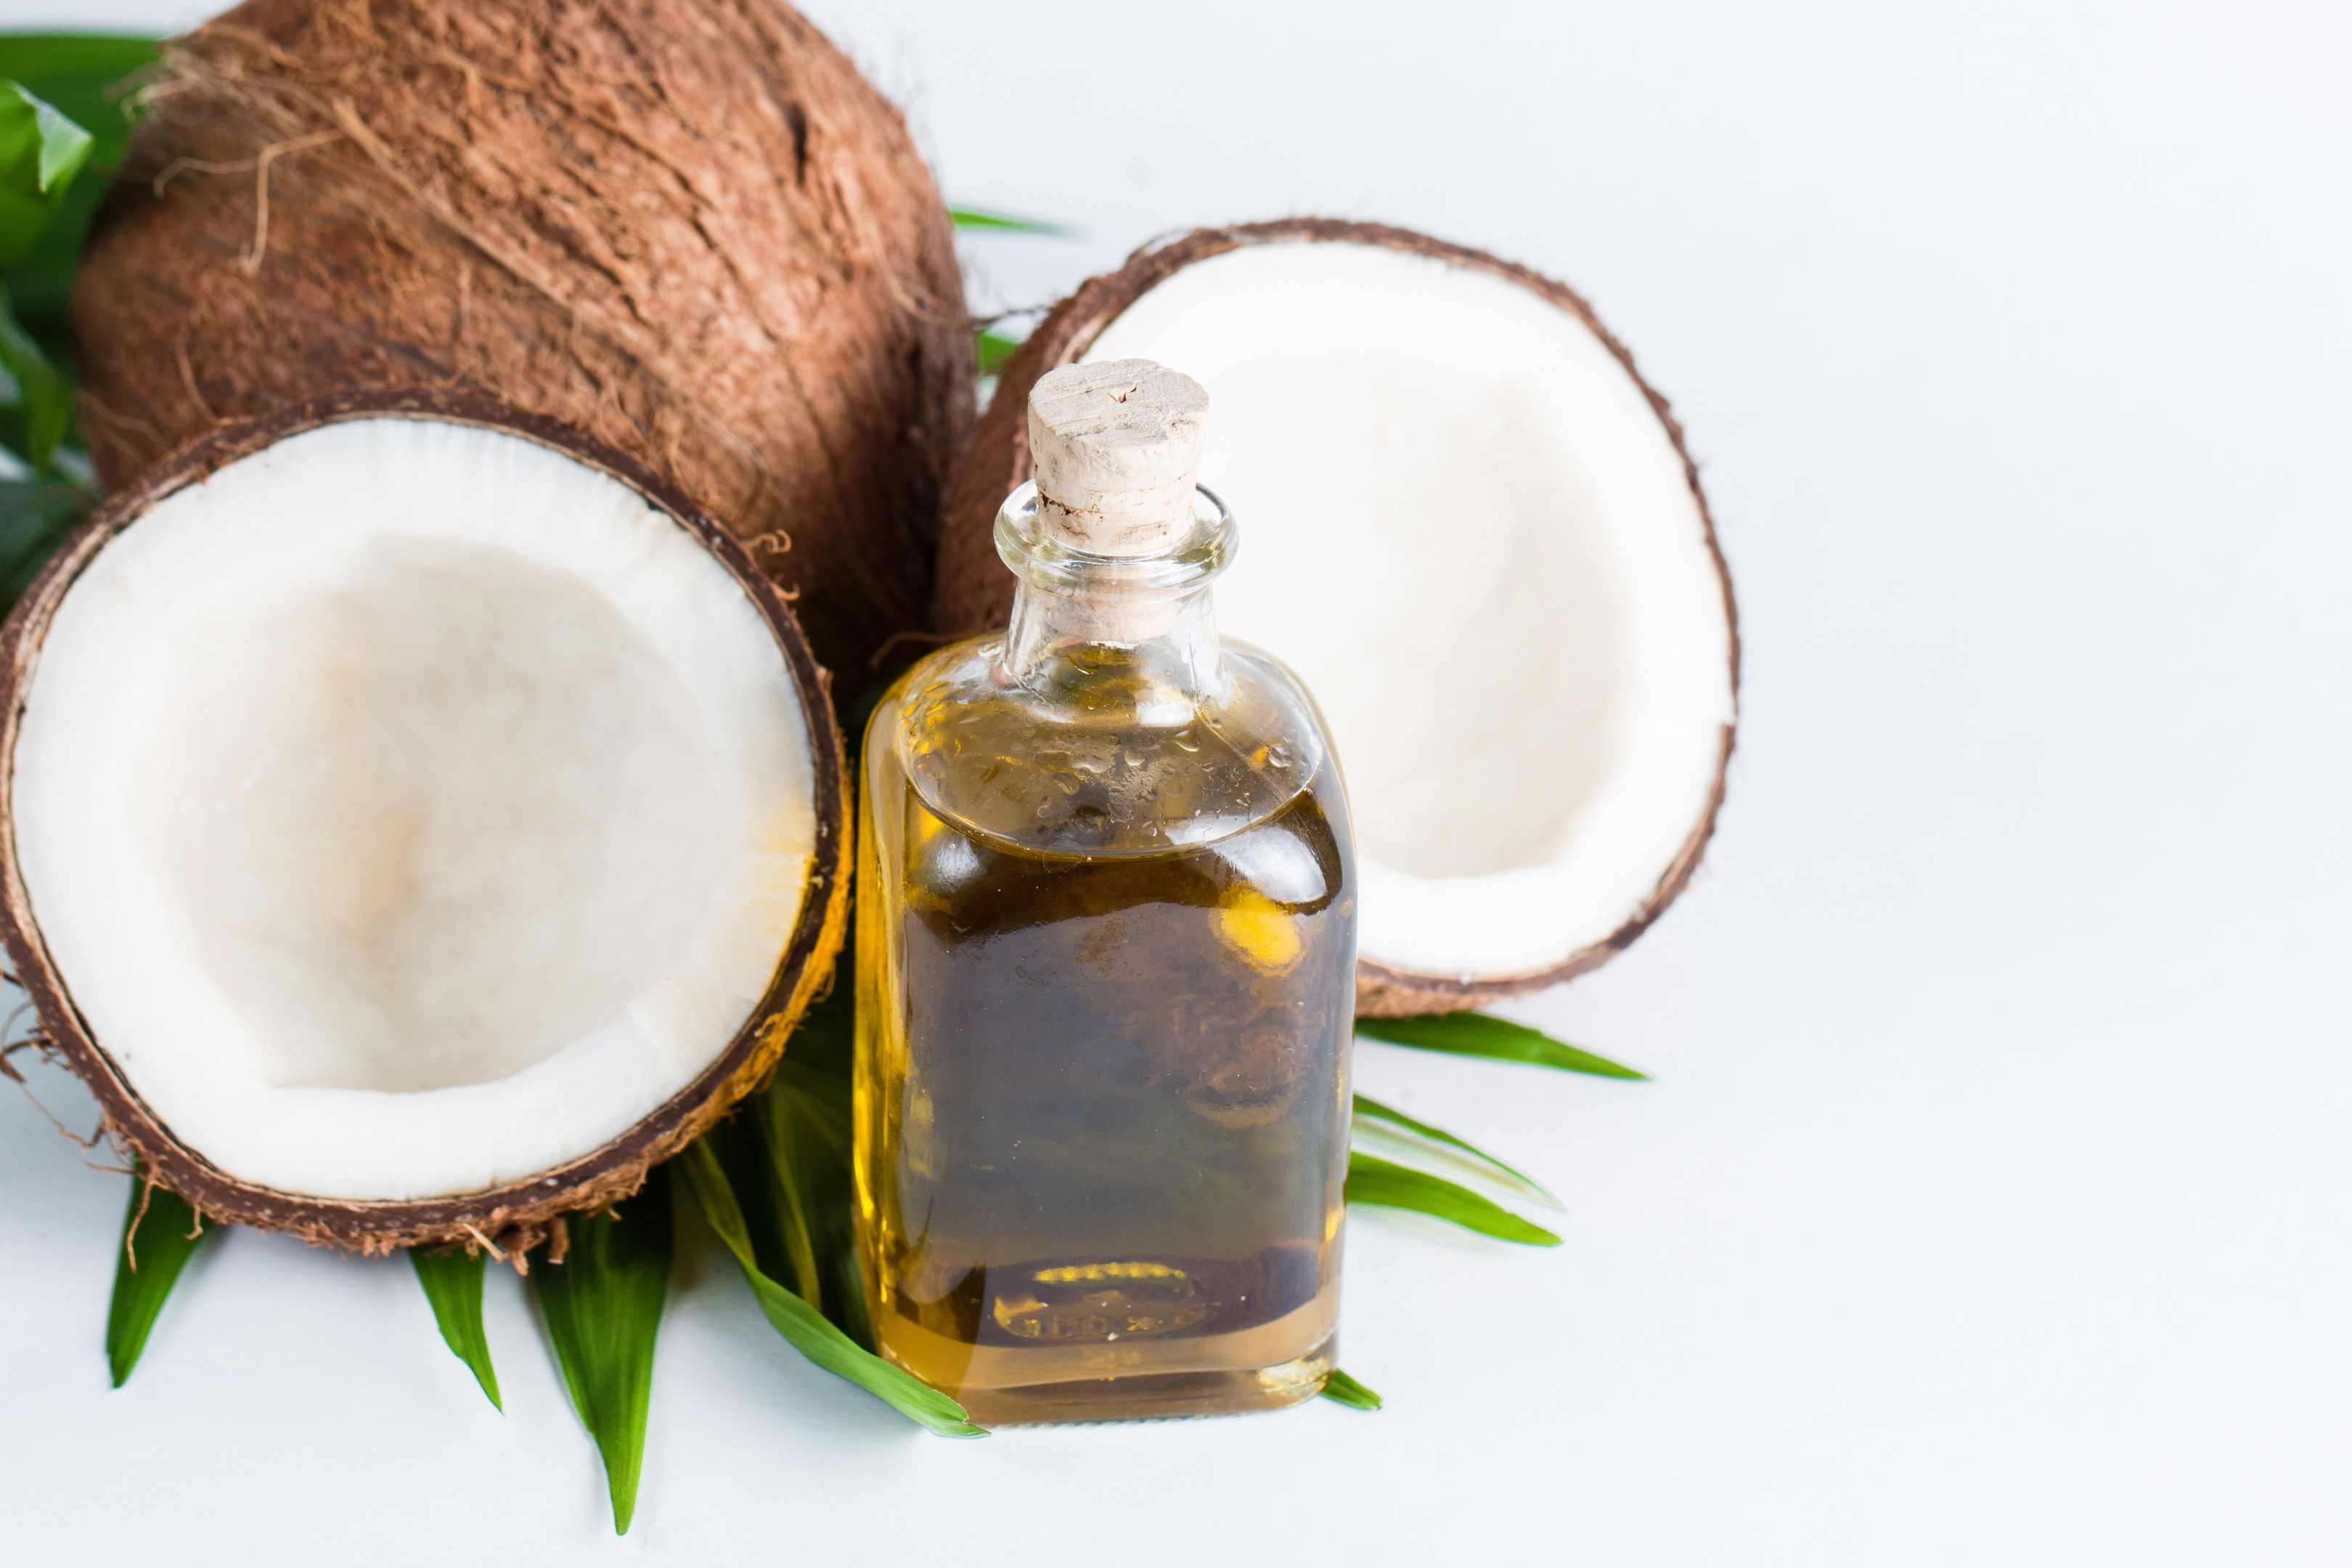 Coconut oil with fresh coconut on white background